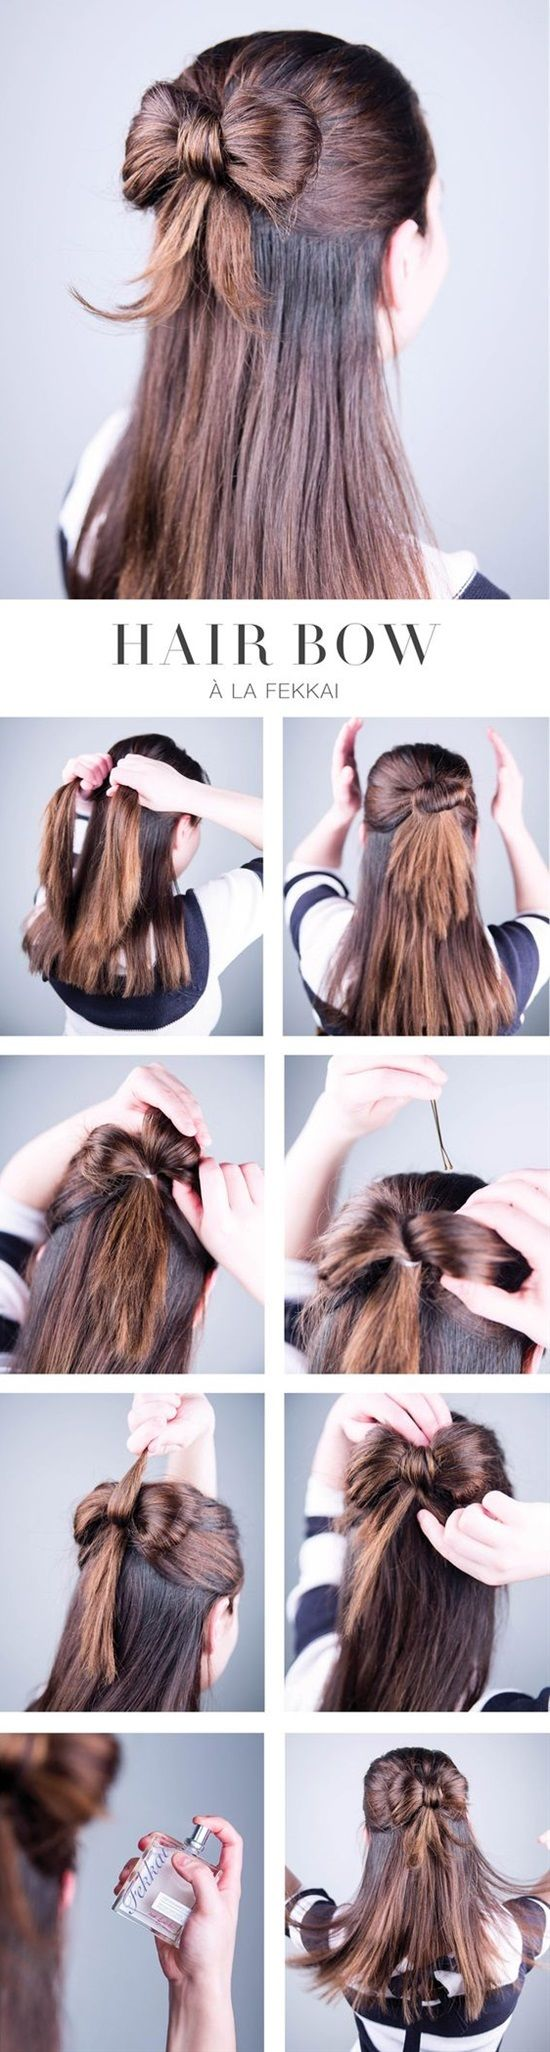 14 Bold & Unique Hairstyle Tutorials You Can Do At Home